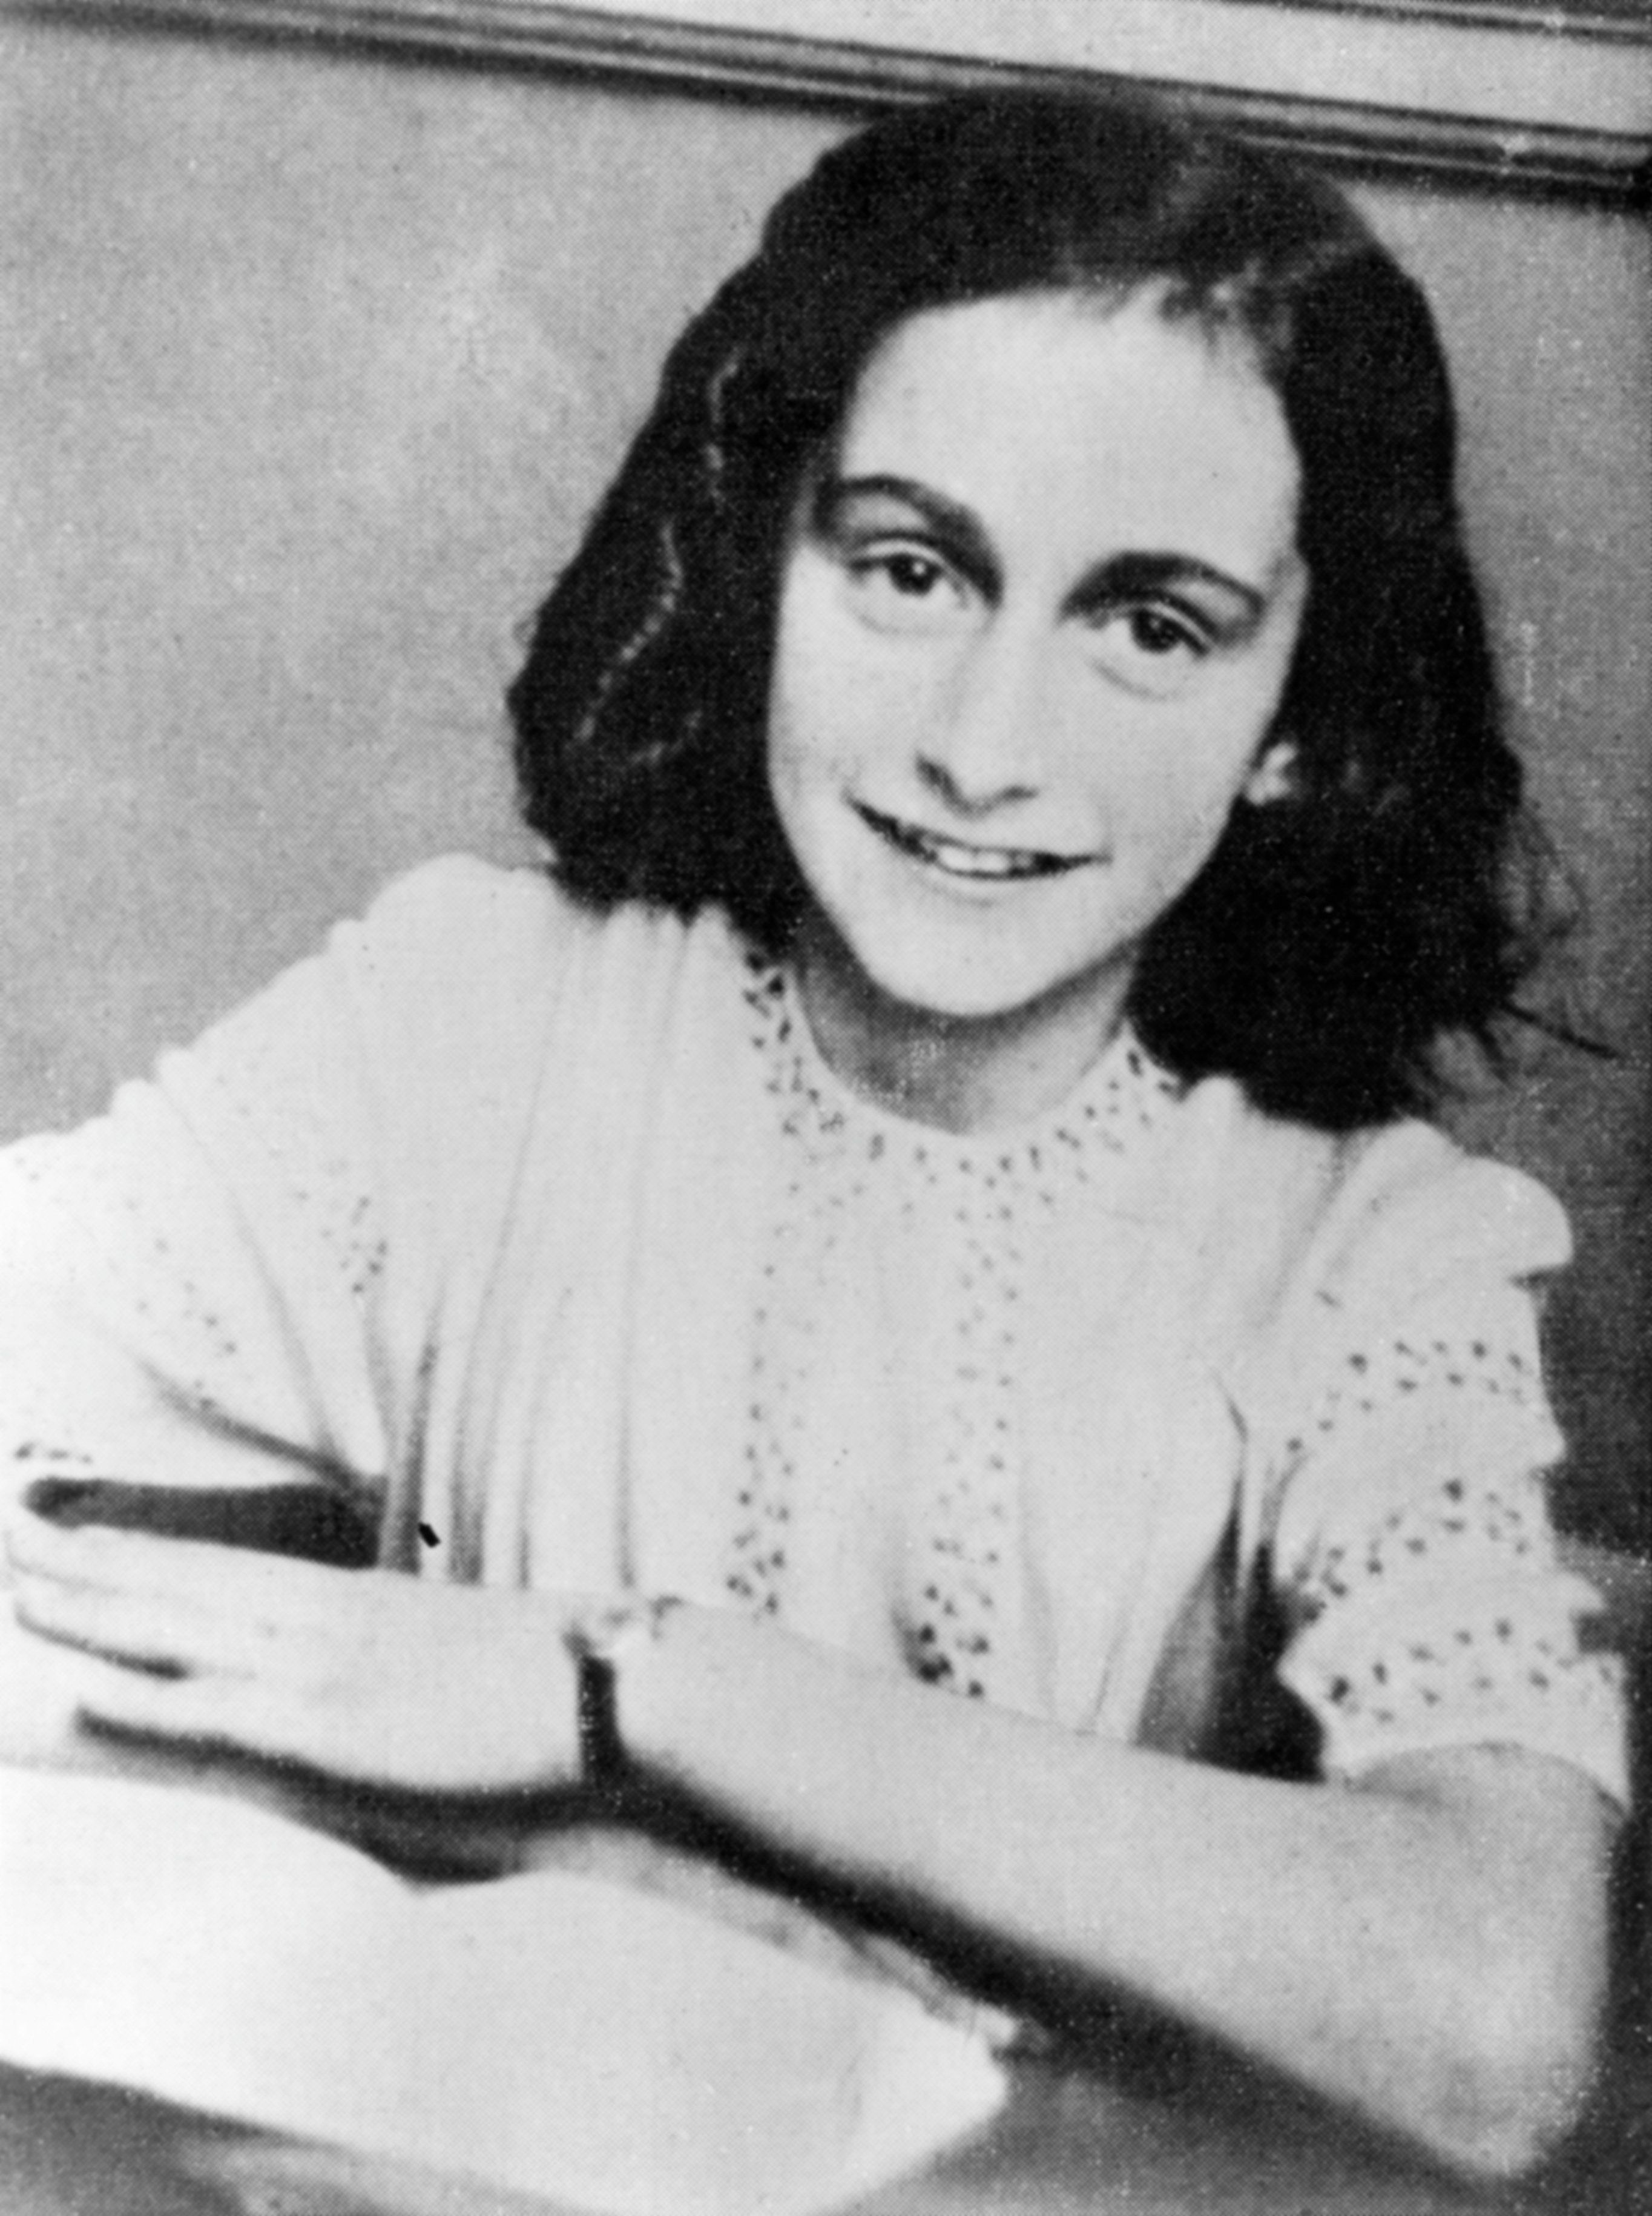 Anne Frank wrote about sexual education, prostitutes and 'dirty' jokes in her diary, something that...